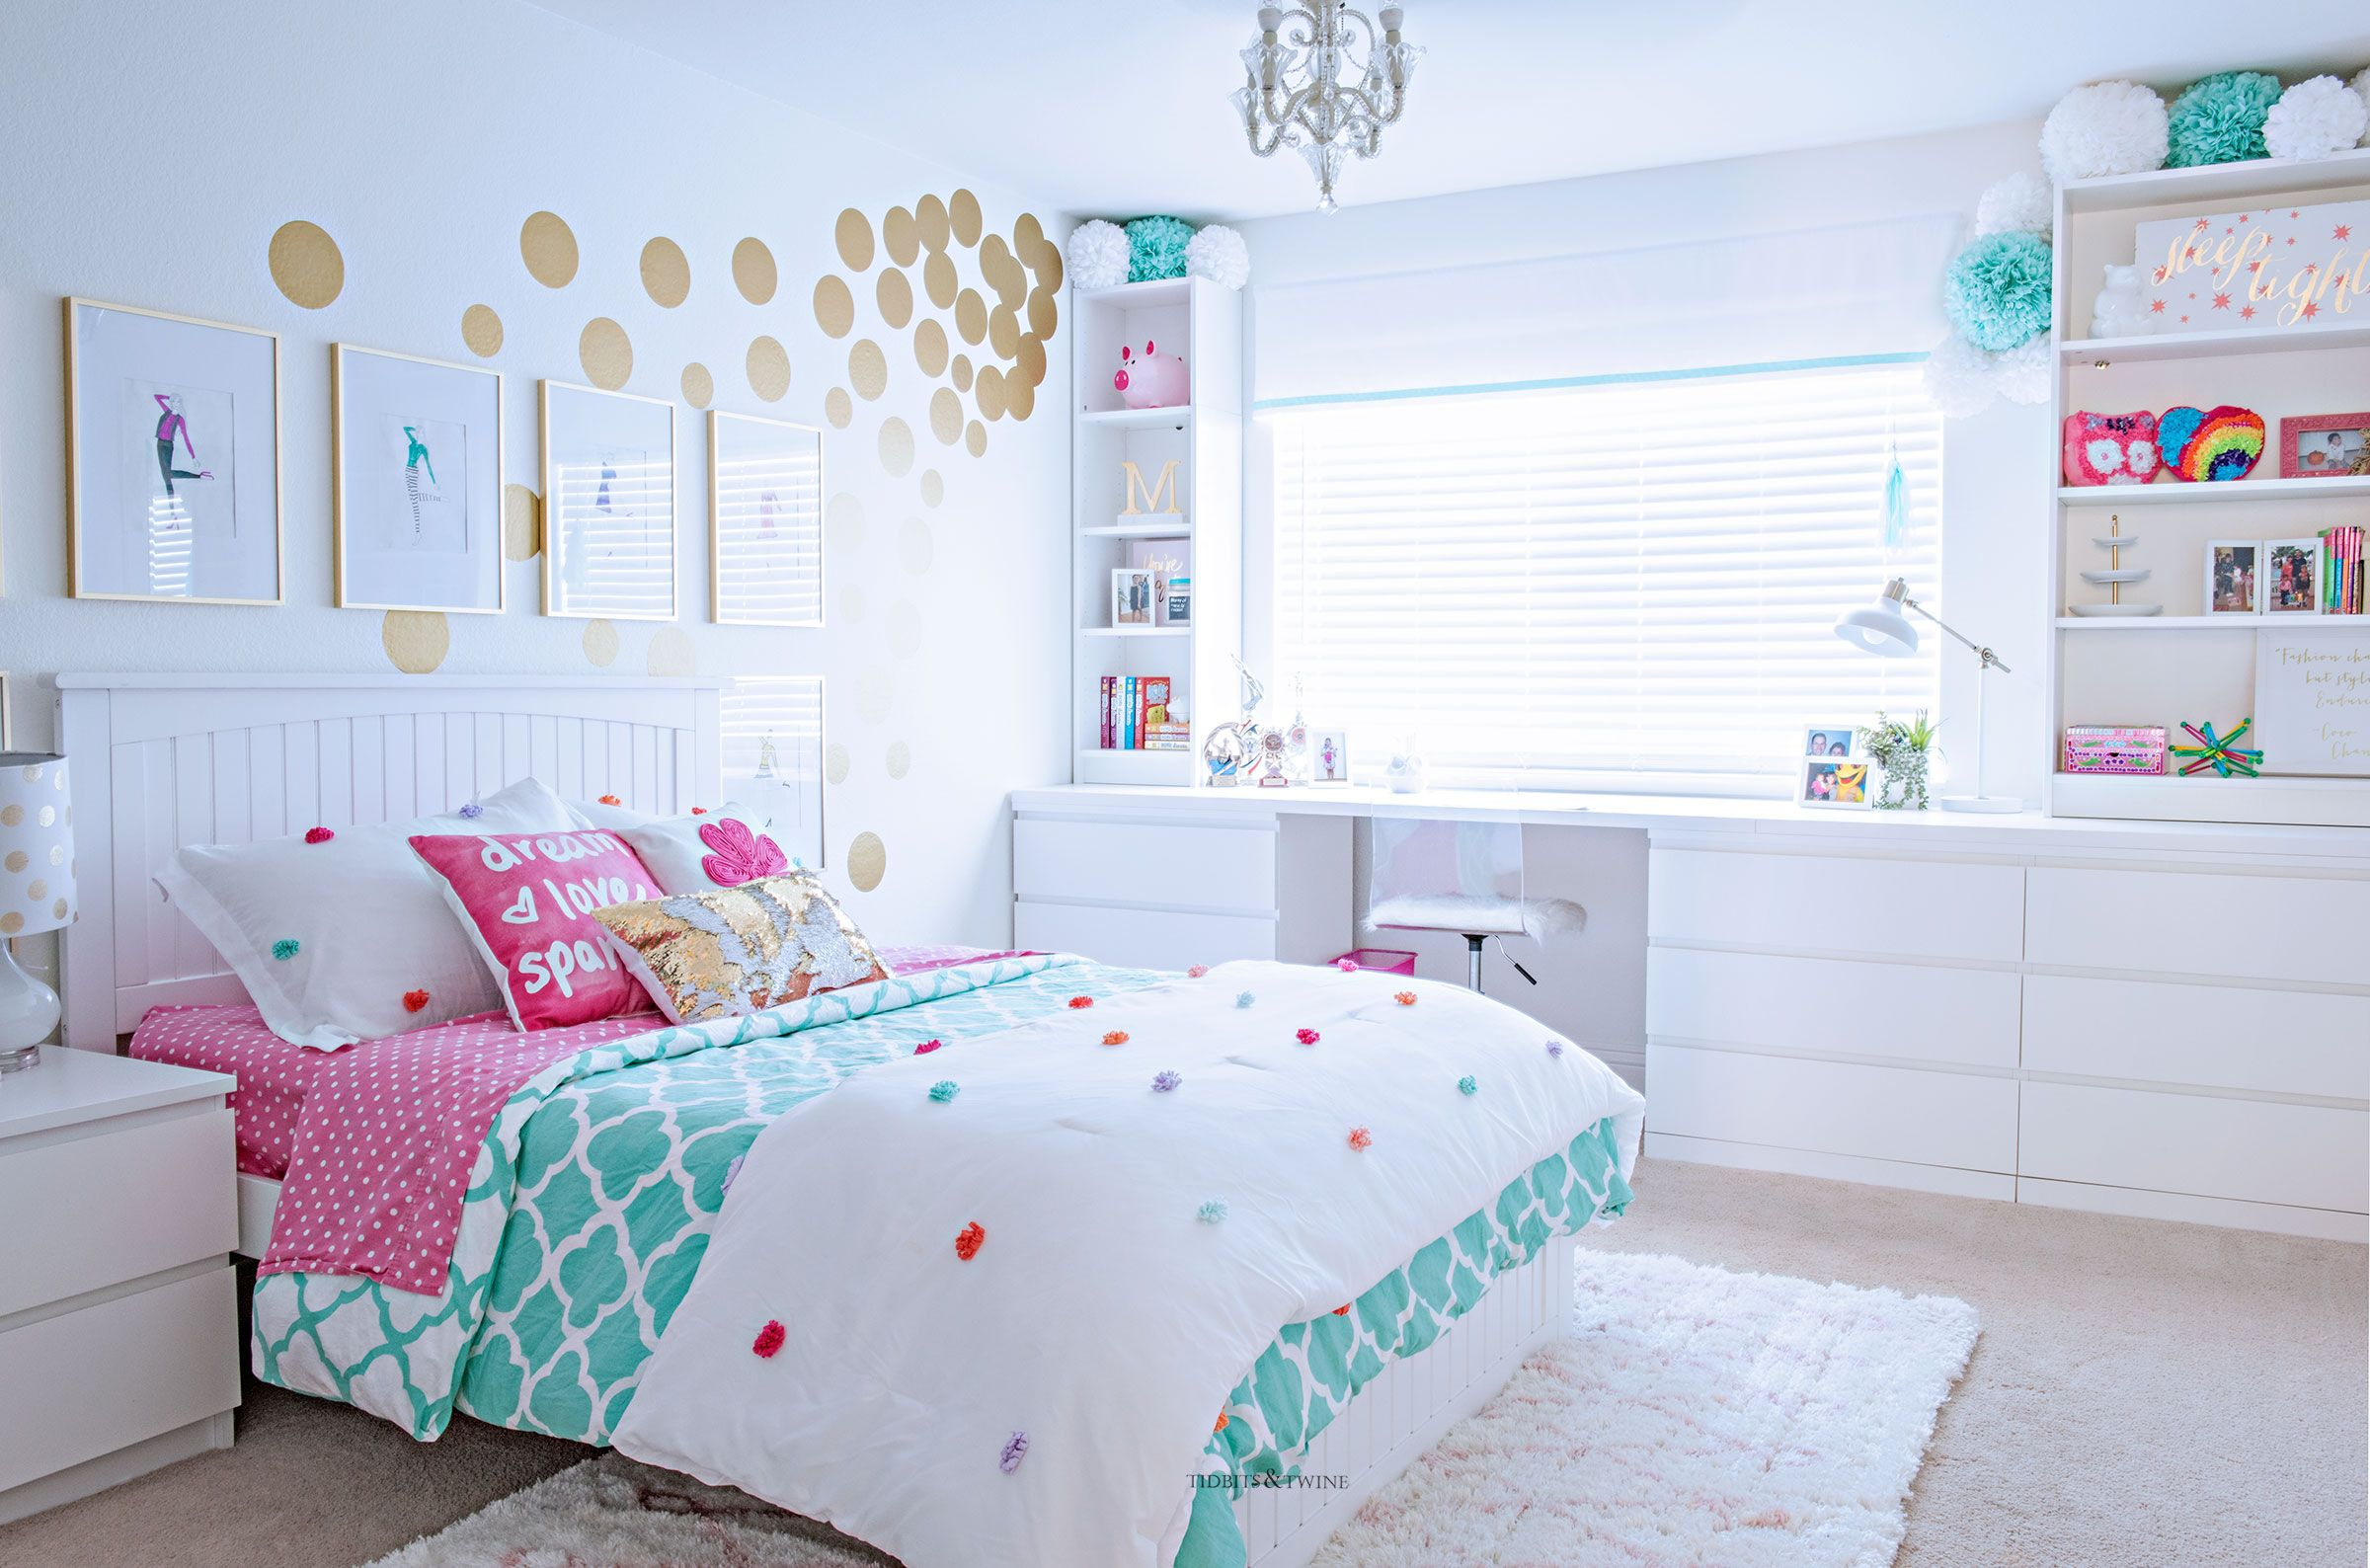 Tween Girls Room with White and Turquoise